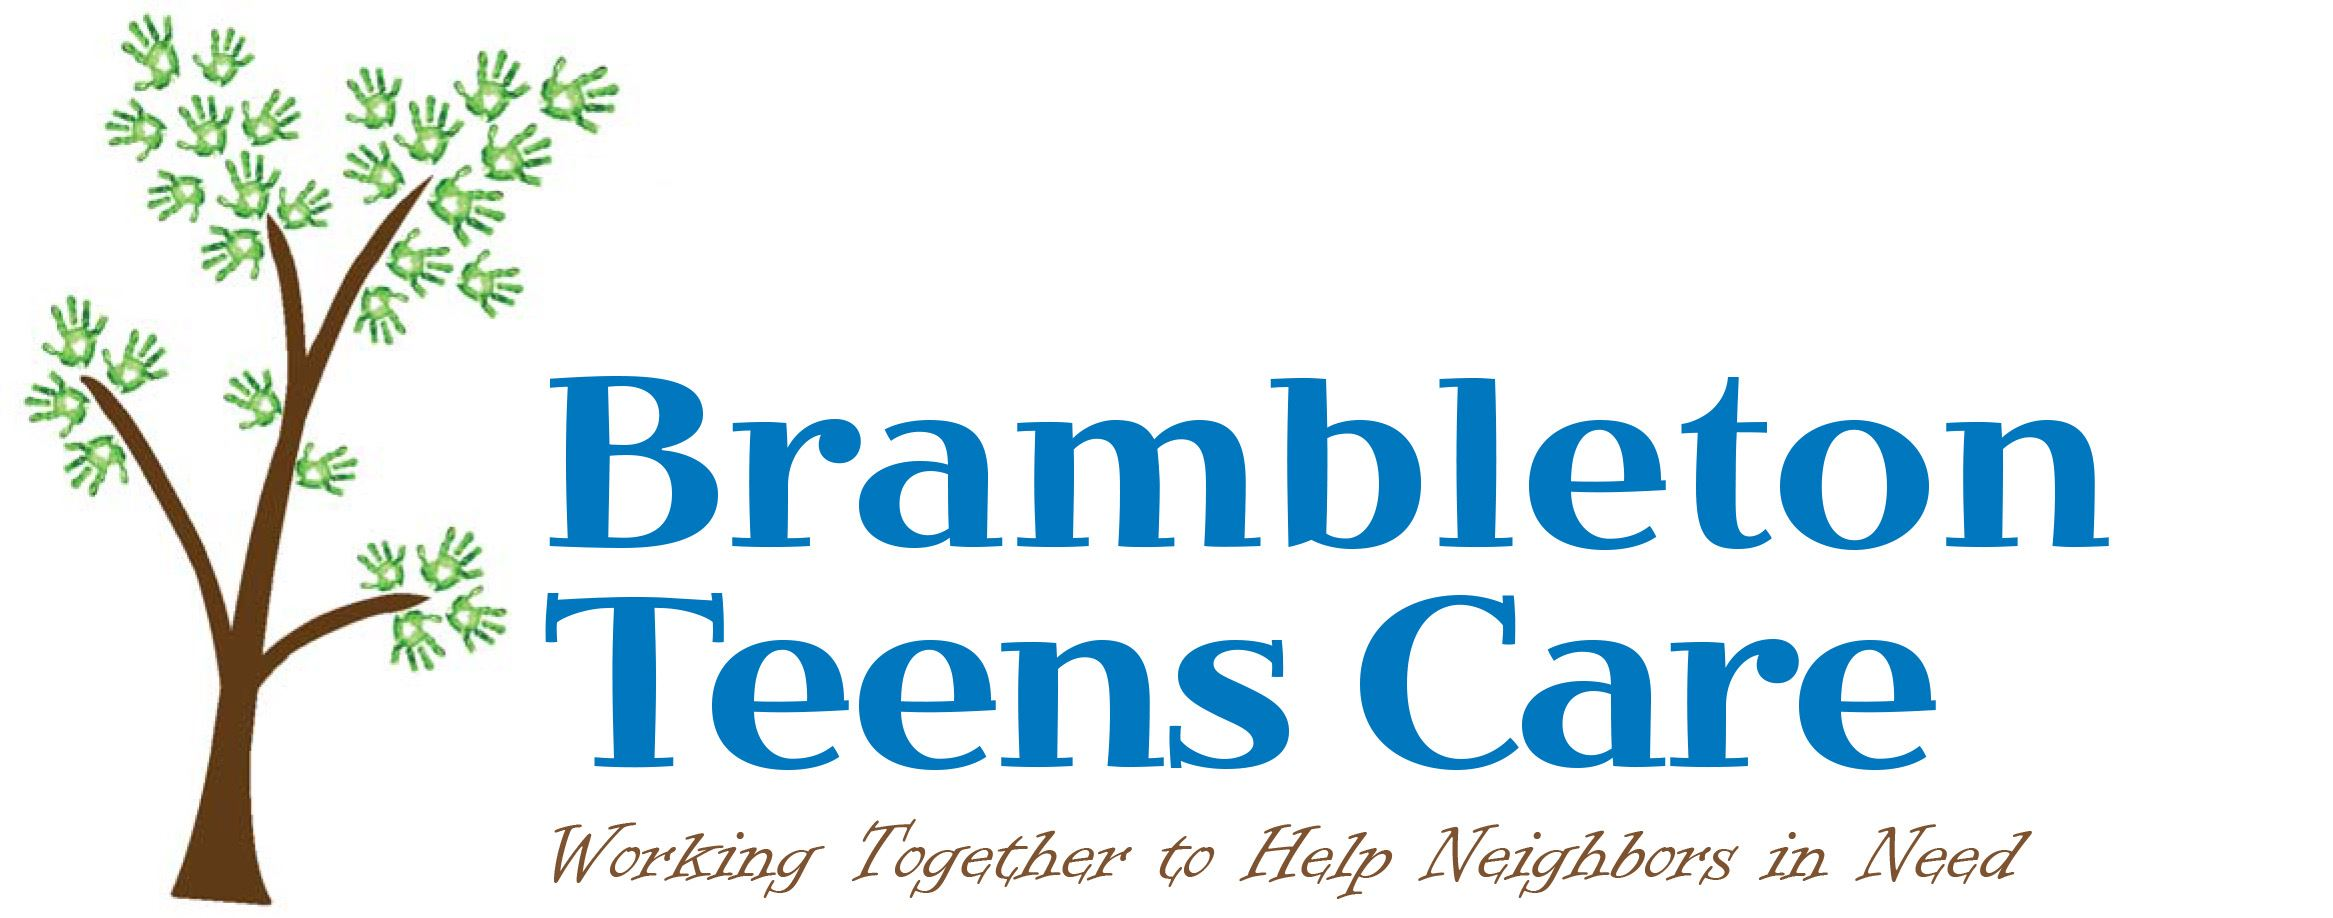 Brambleton Teens Care Logo